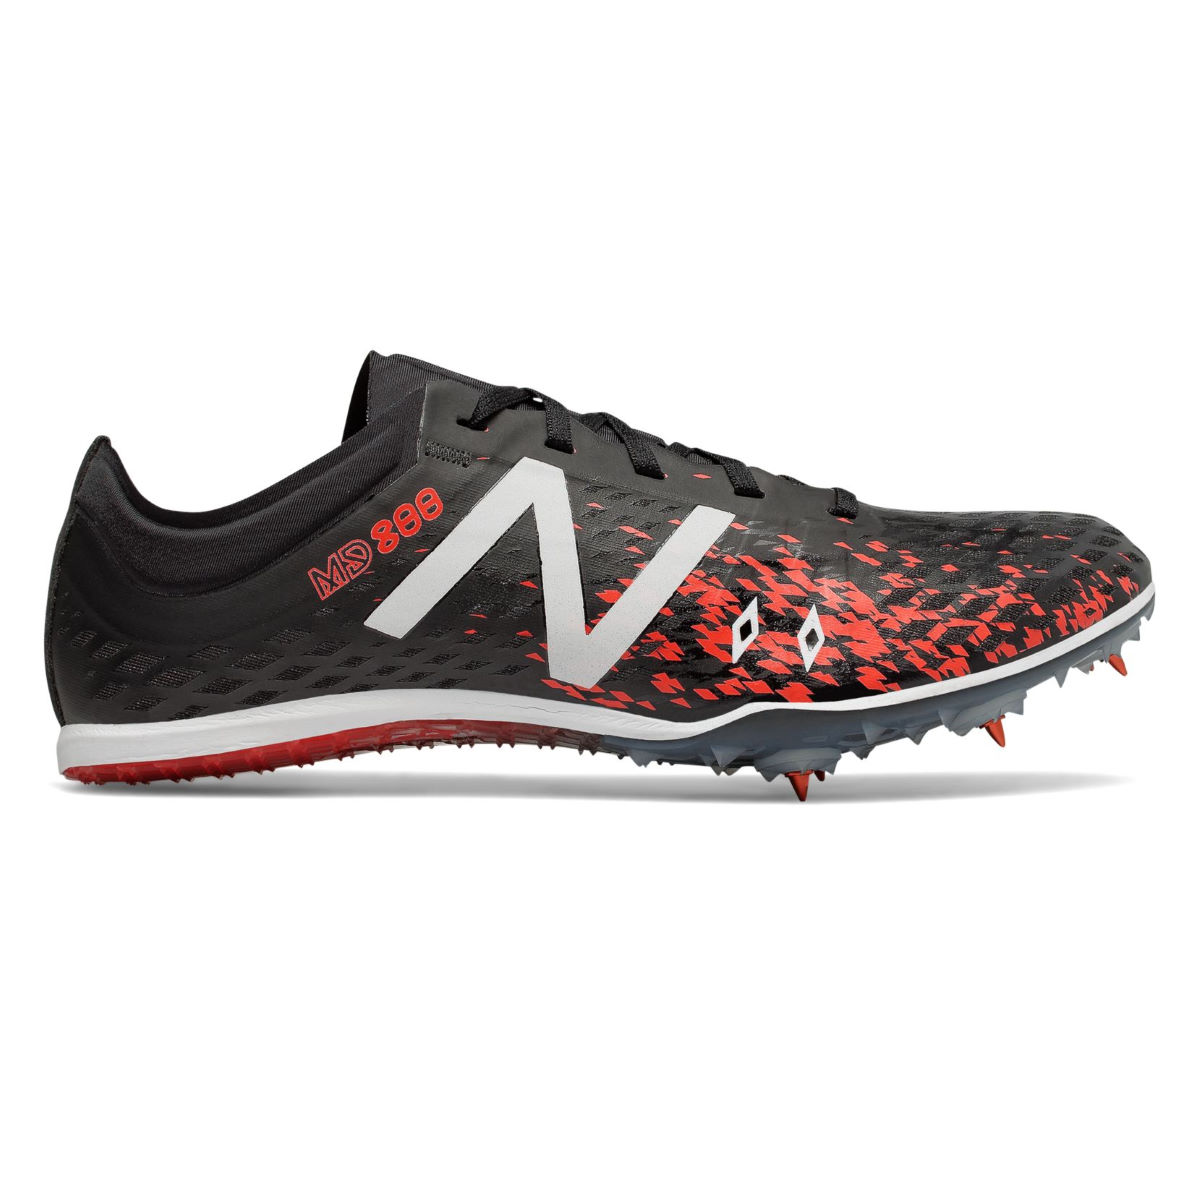 New Balance MD800 v5 Shoes - Zapatillas de atletismo